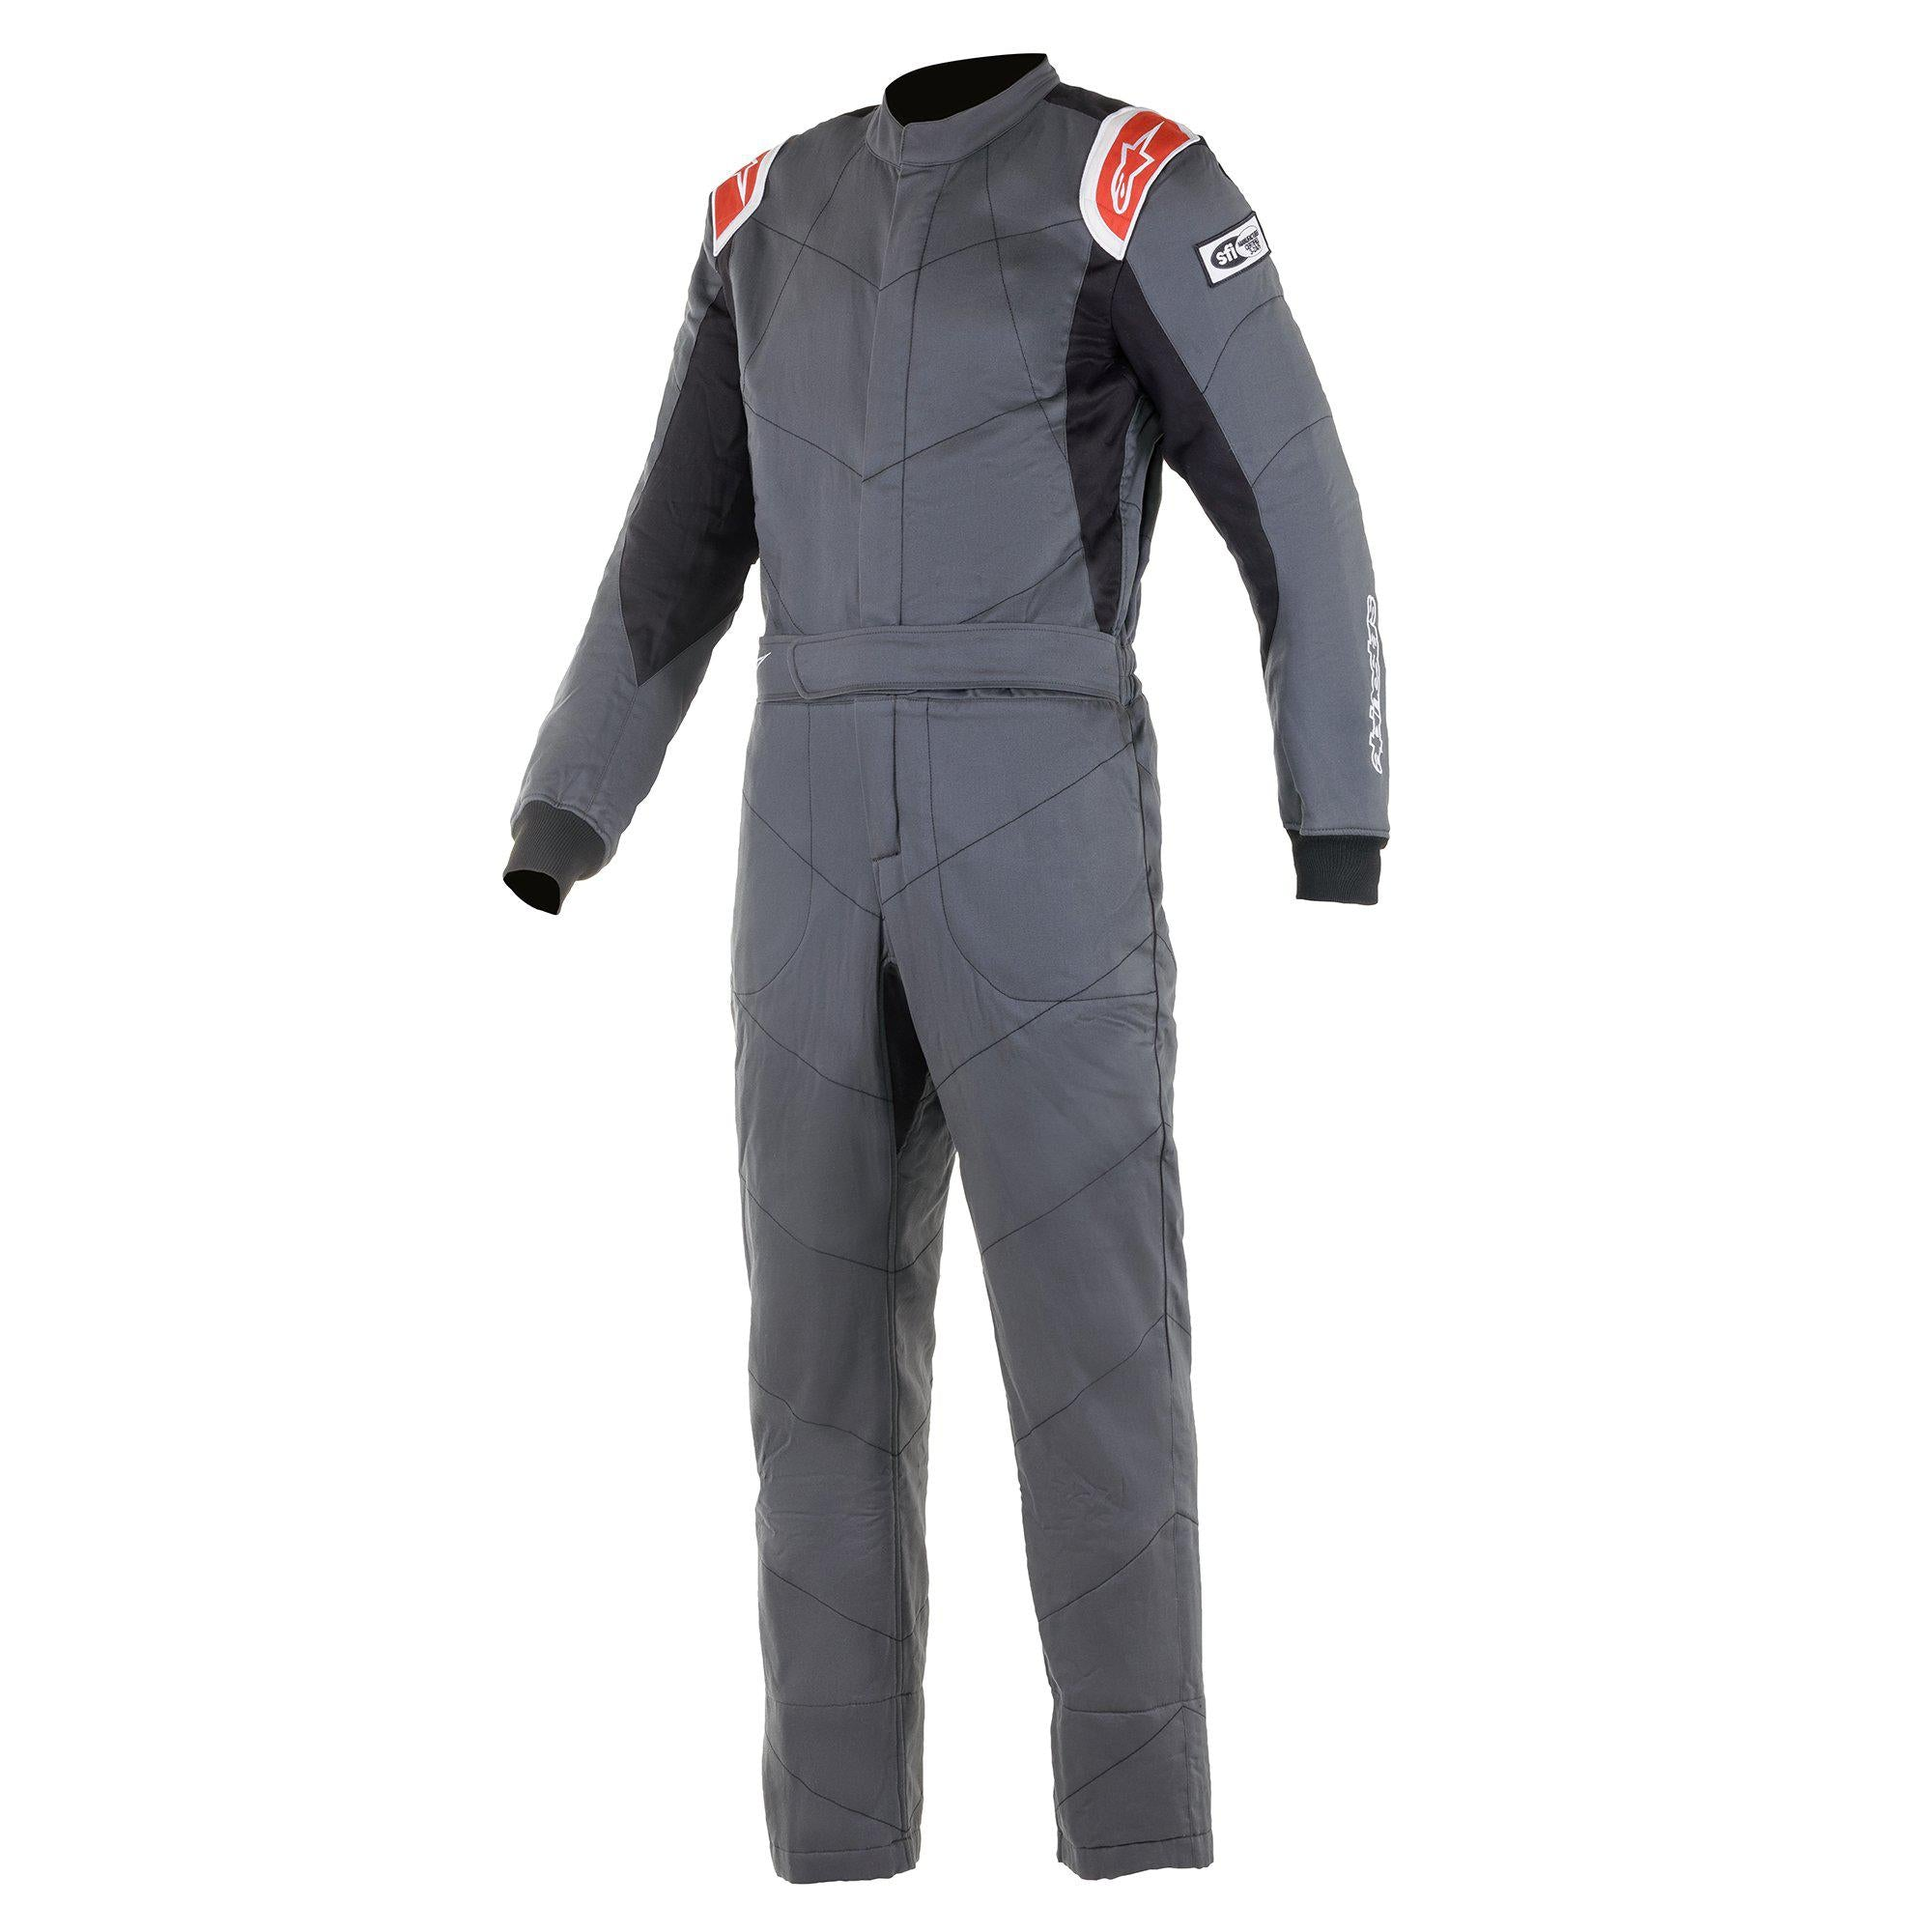 2021 Knoxville V2 Suit